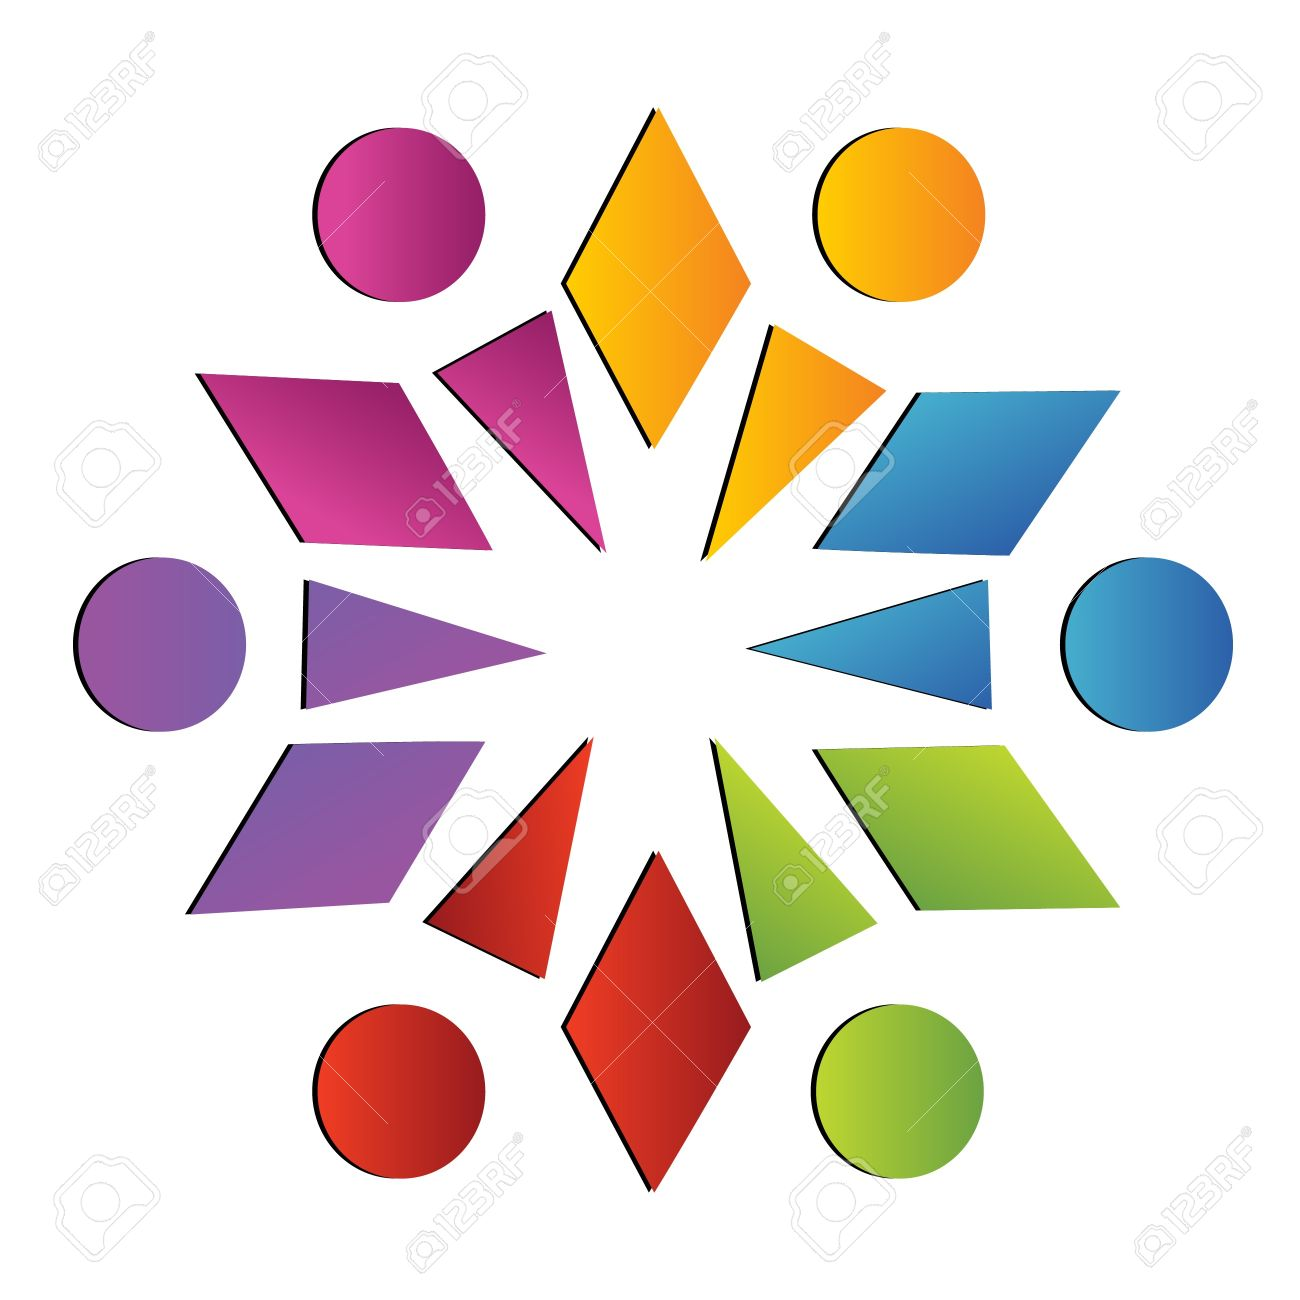 Team abstract social logo Stock Vector - 11295408